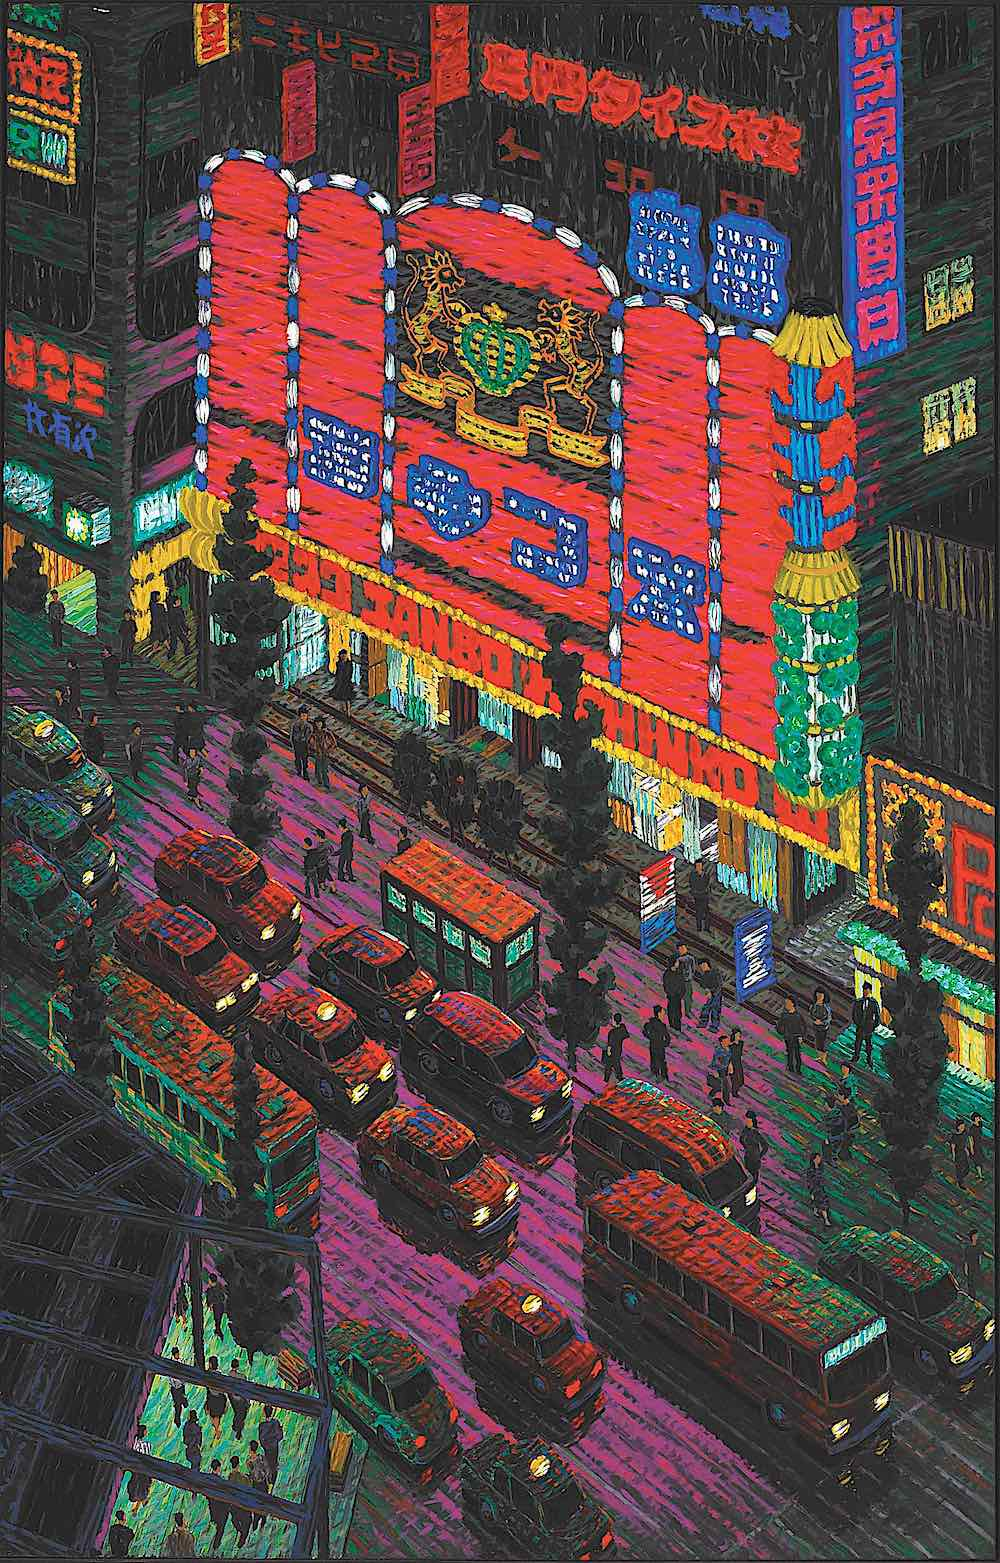 Yvonne Jacquette, a city at night from a birdseye view